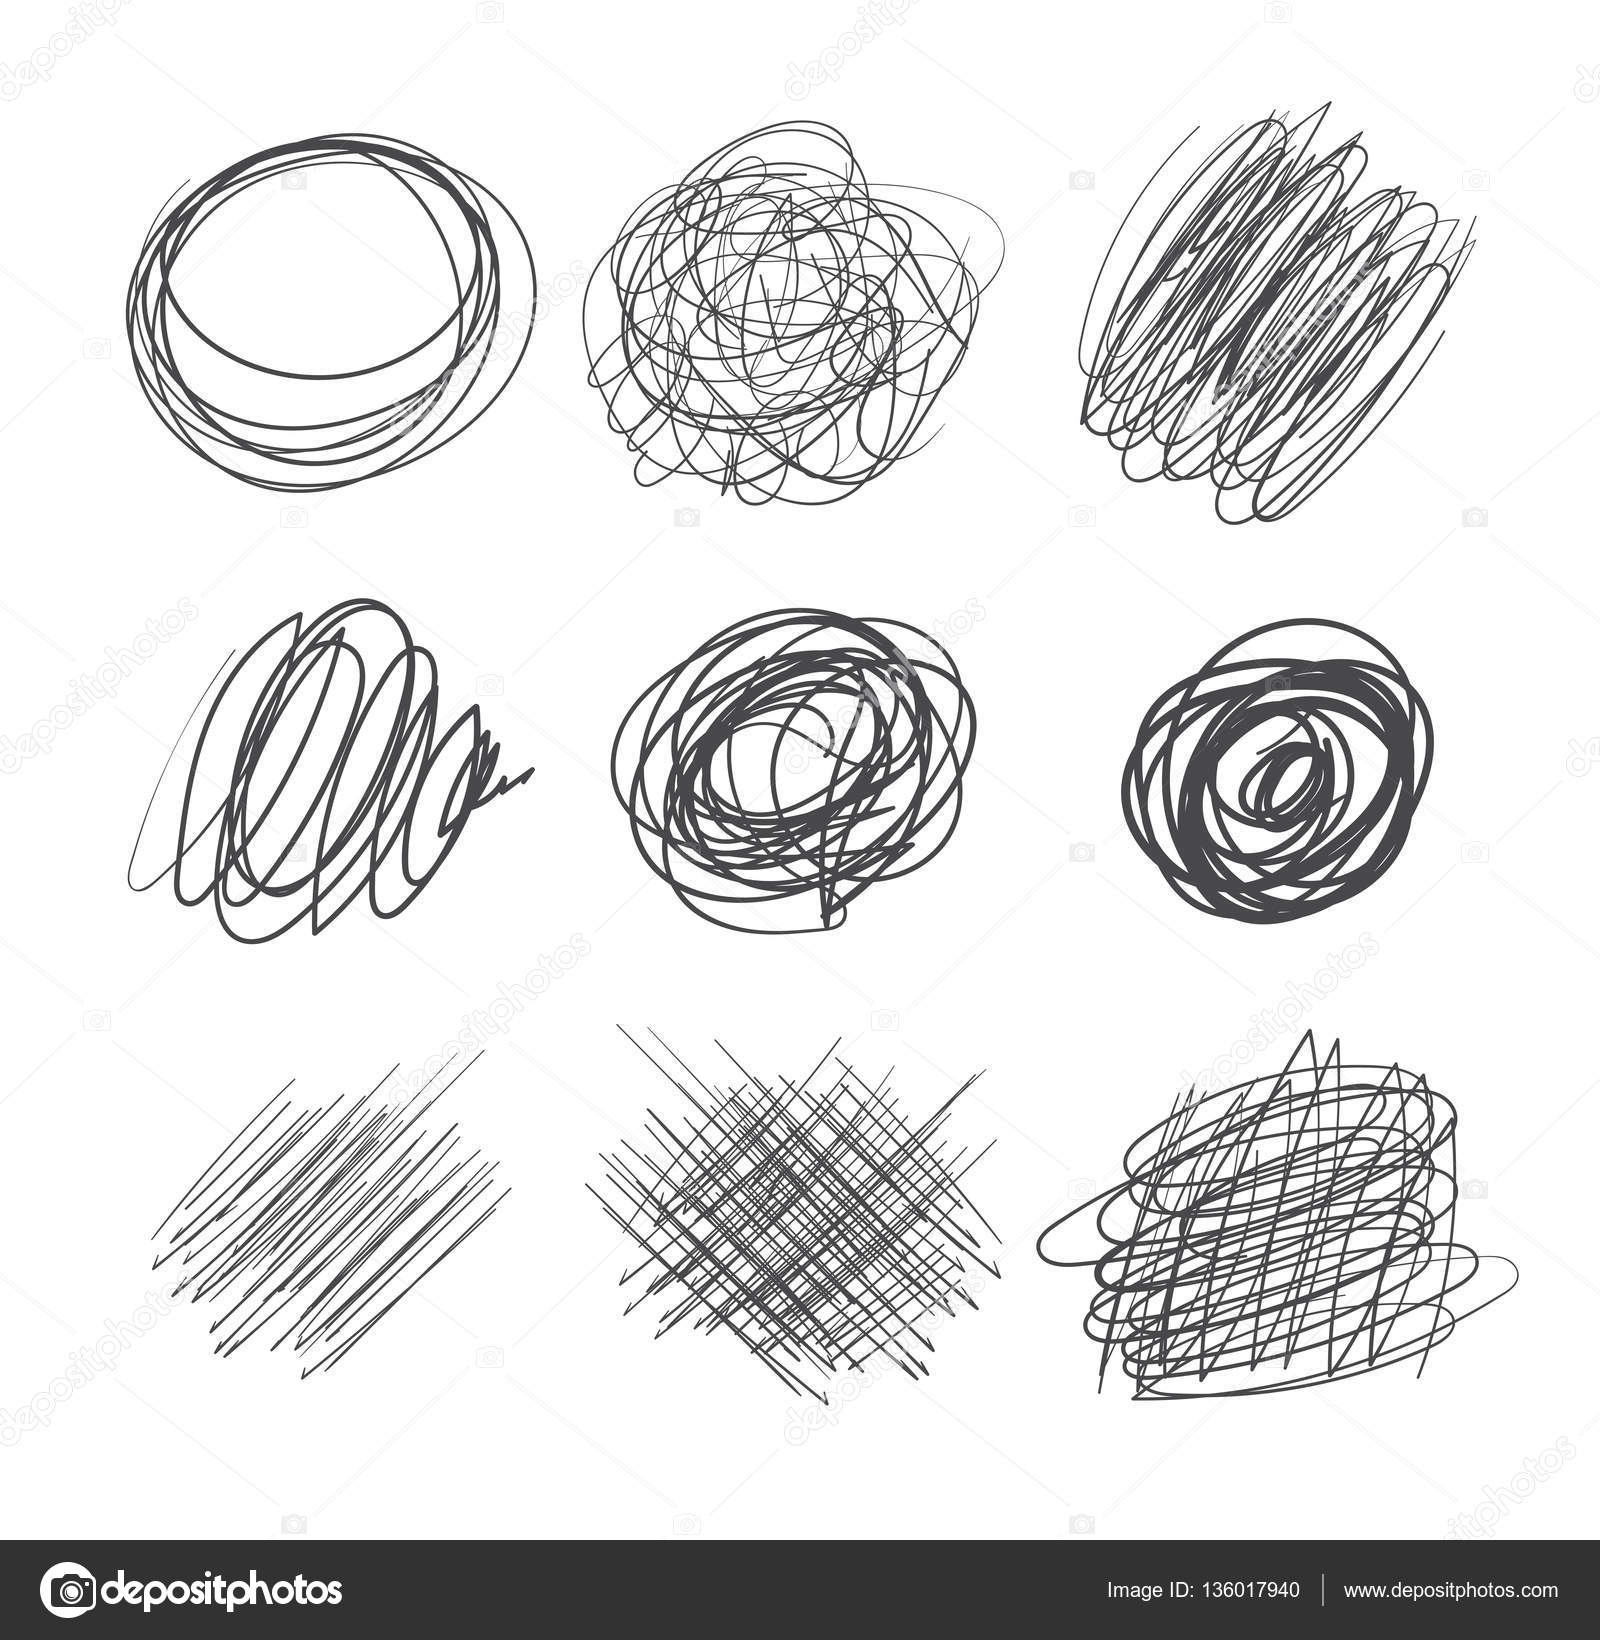 Abstract chaotic round sketch pencil drawing for your design vector illustration isolated on white background vector by kharlamova lv